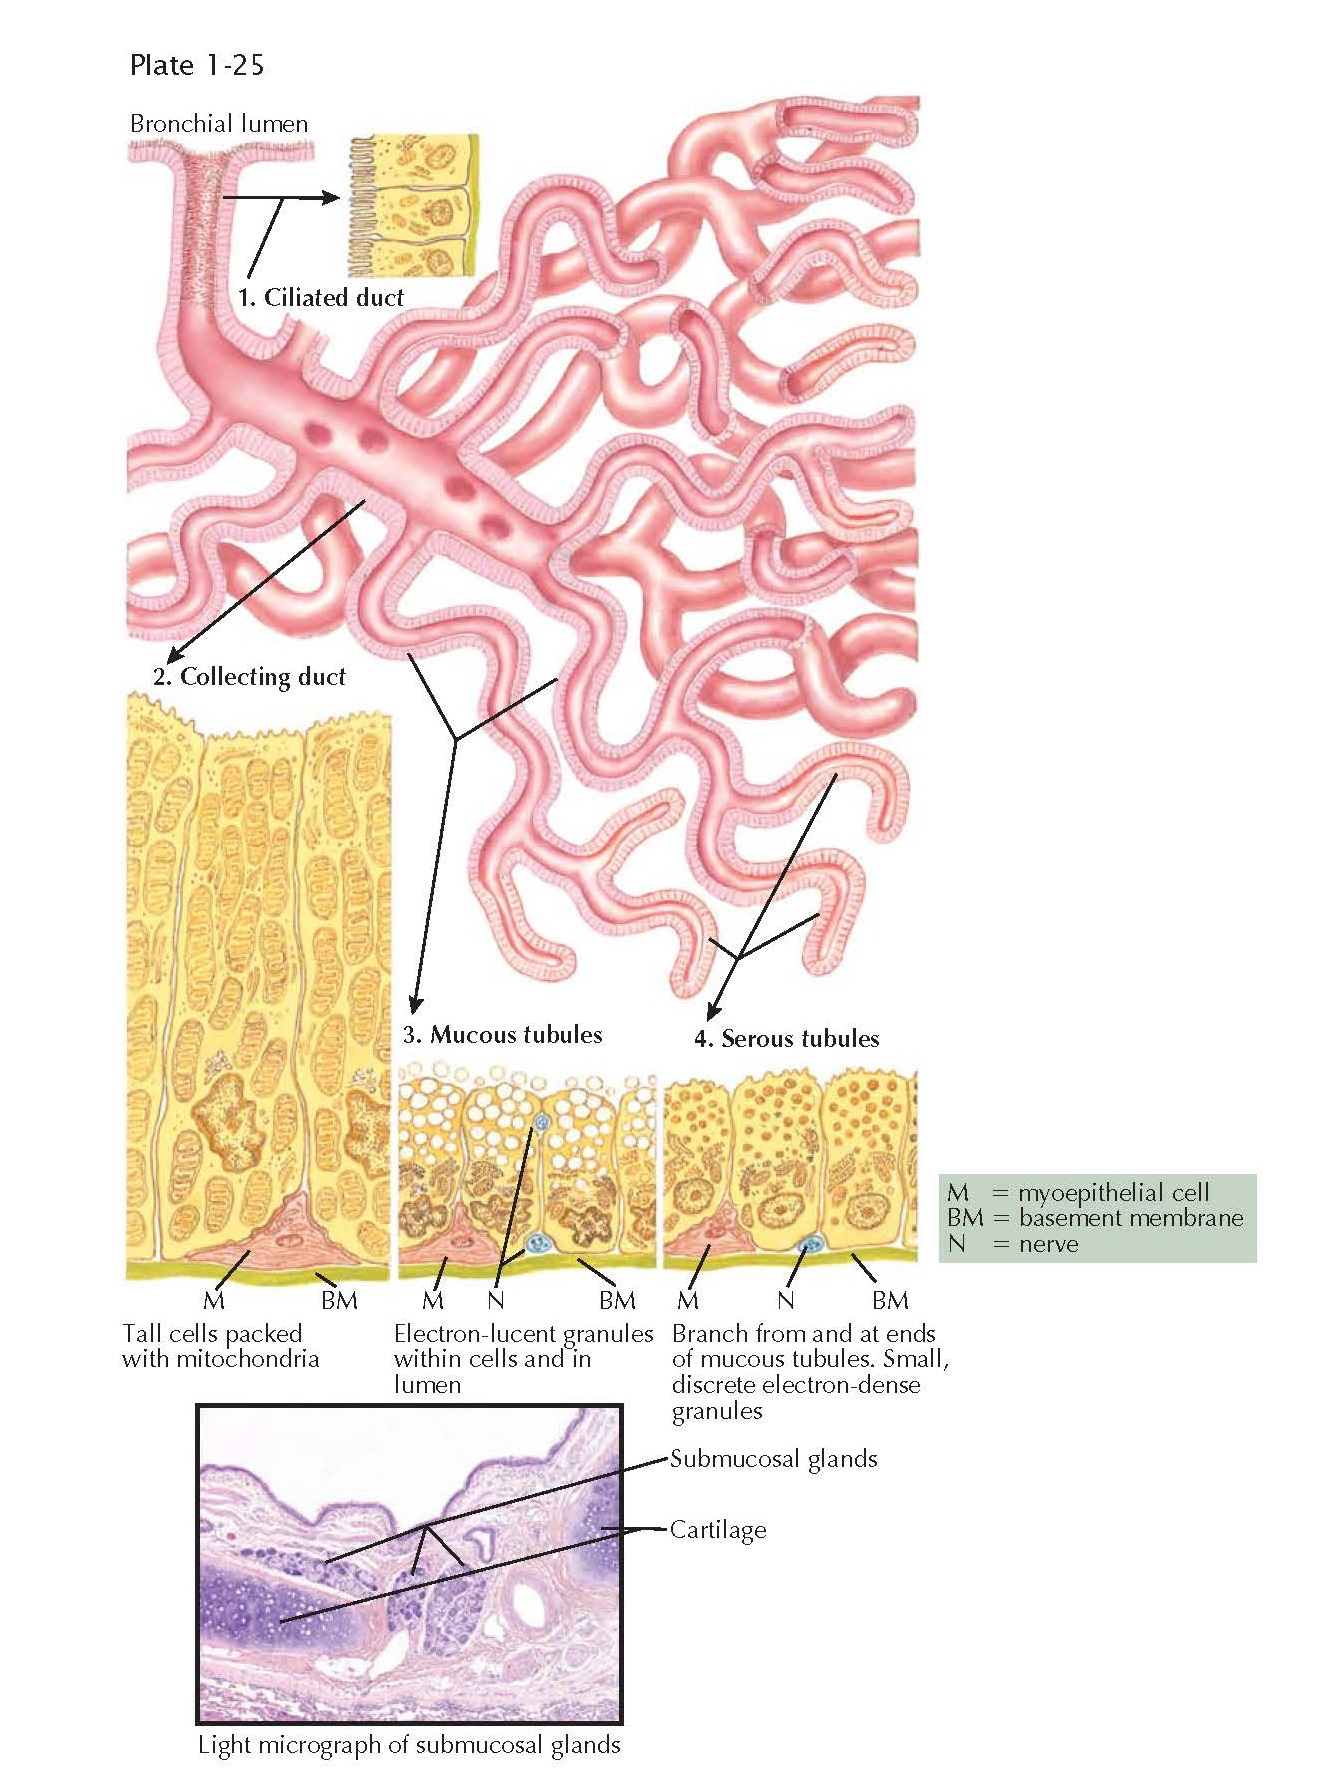 BRONCHIAL SUBMUCOSAL GLANDS